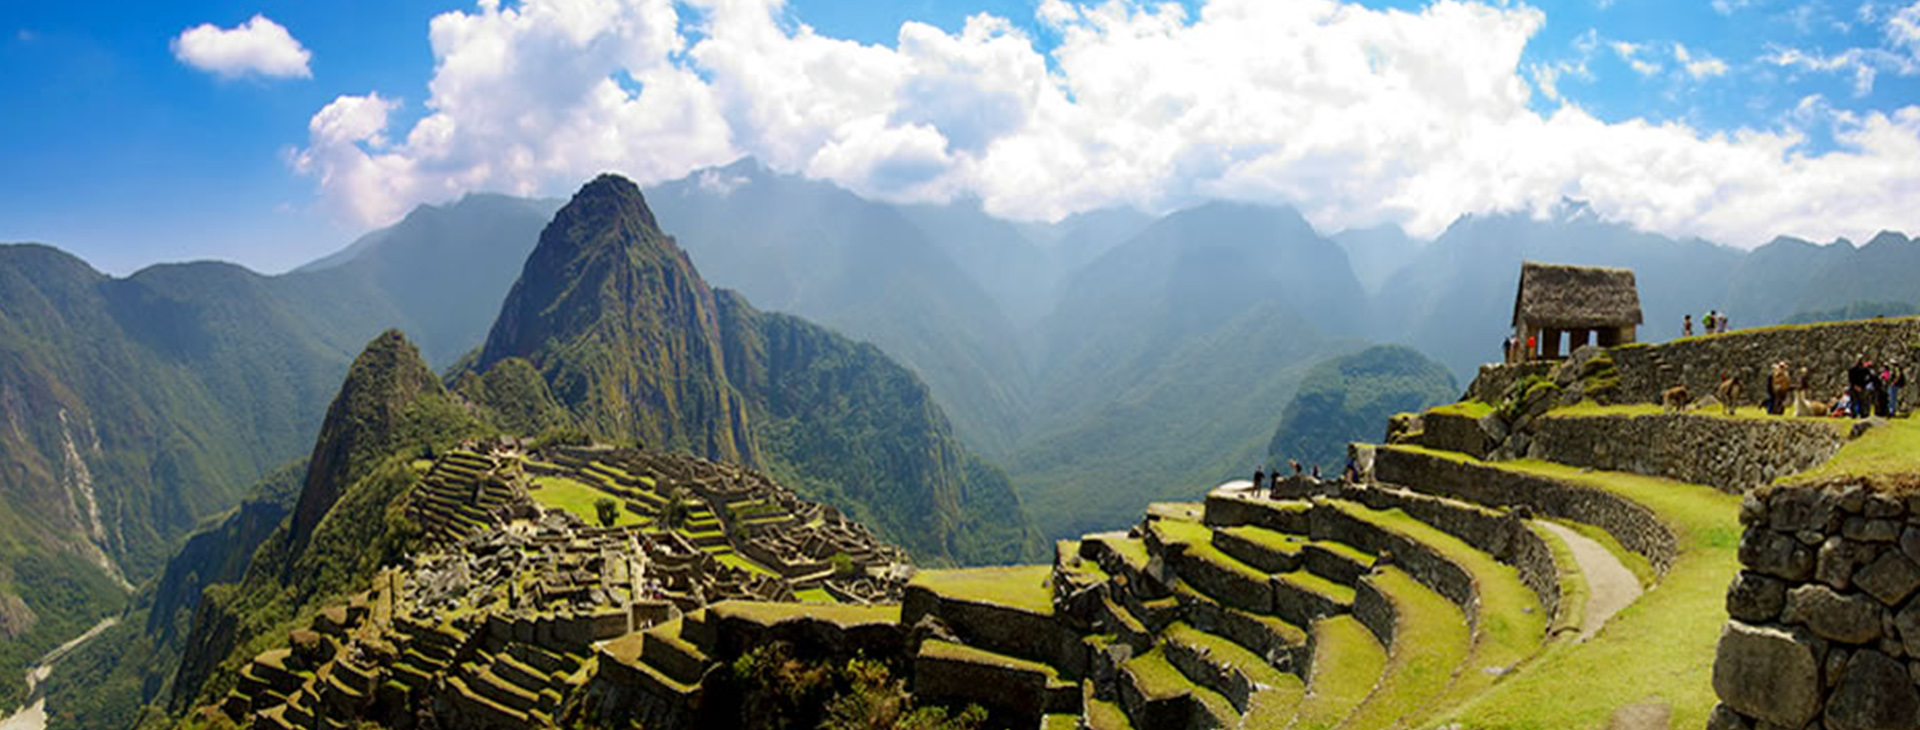 Tours Machu Picchu 1 day by Train - TOURS PERU MACHU PICCHU